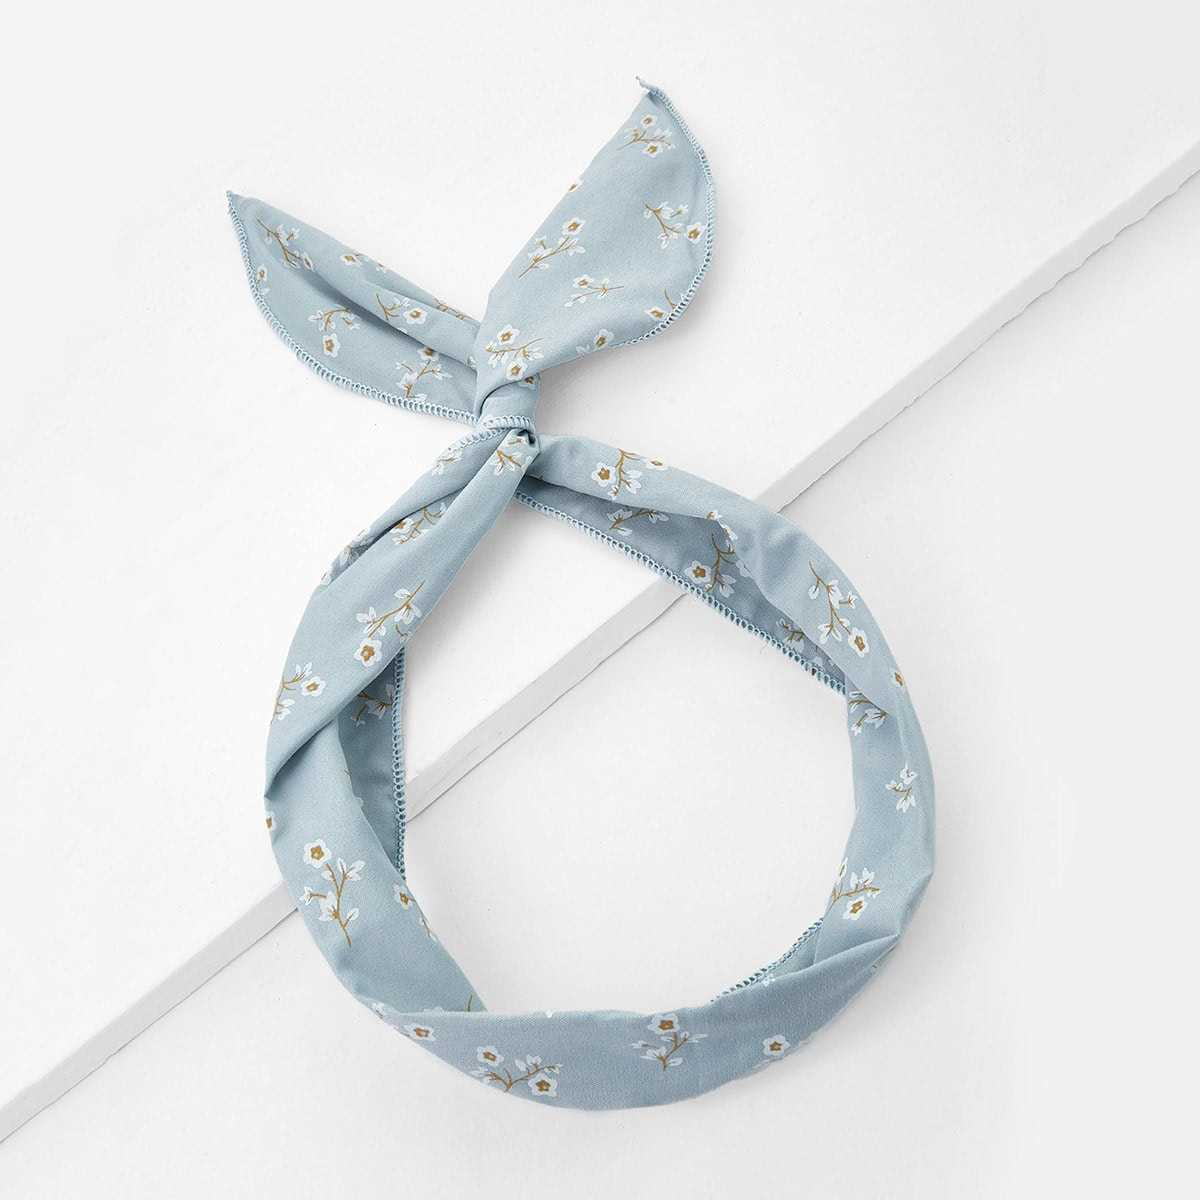 Calico Print Knot Headband in Blue by ROMWE on GOOFASH